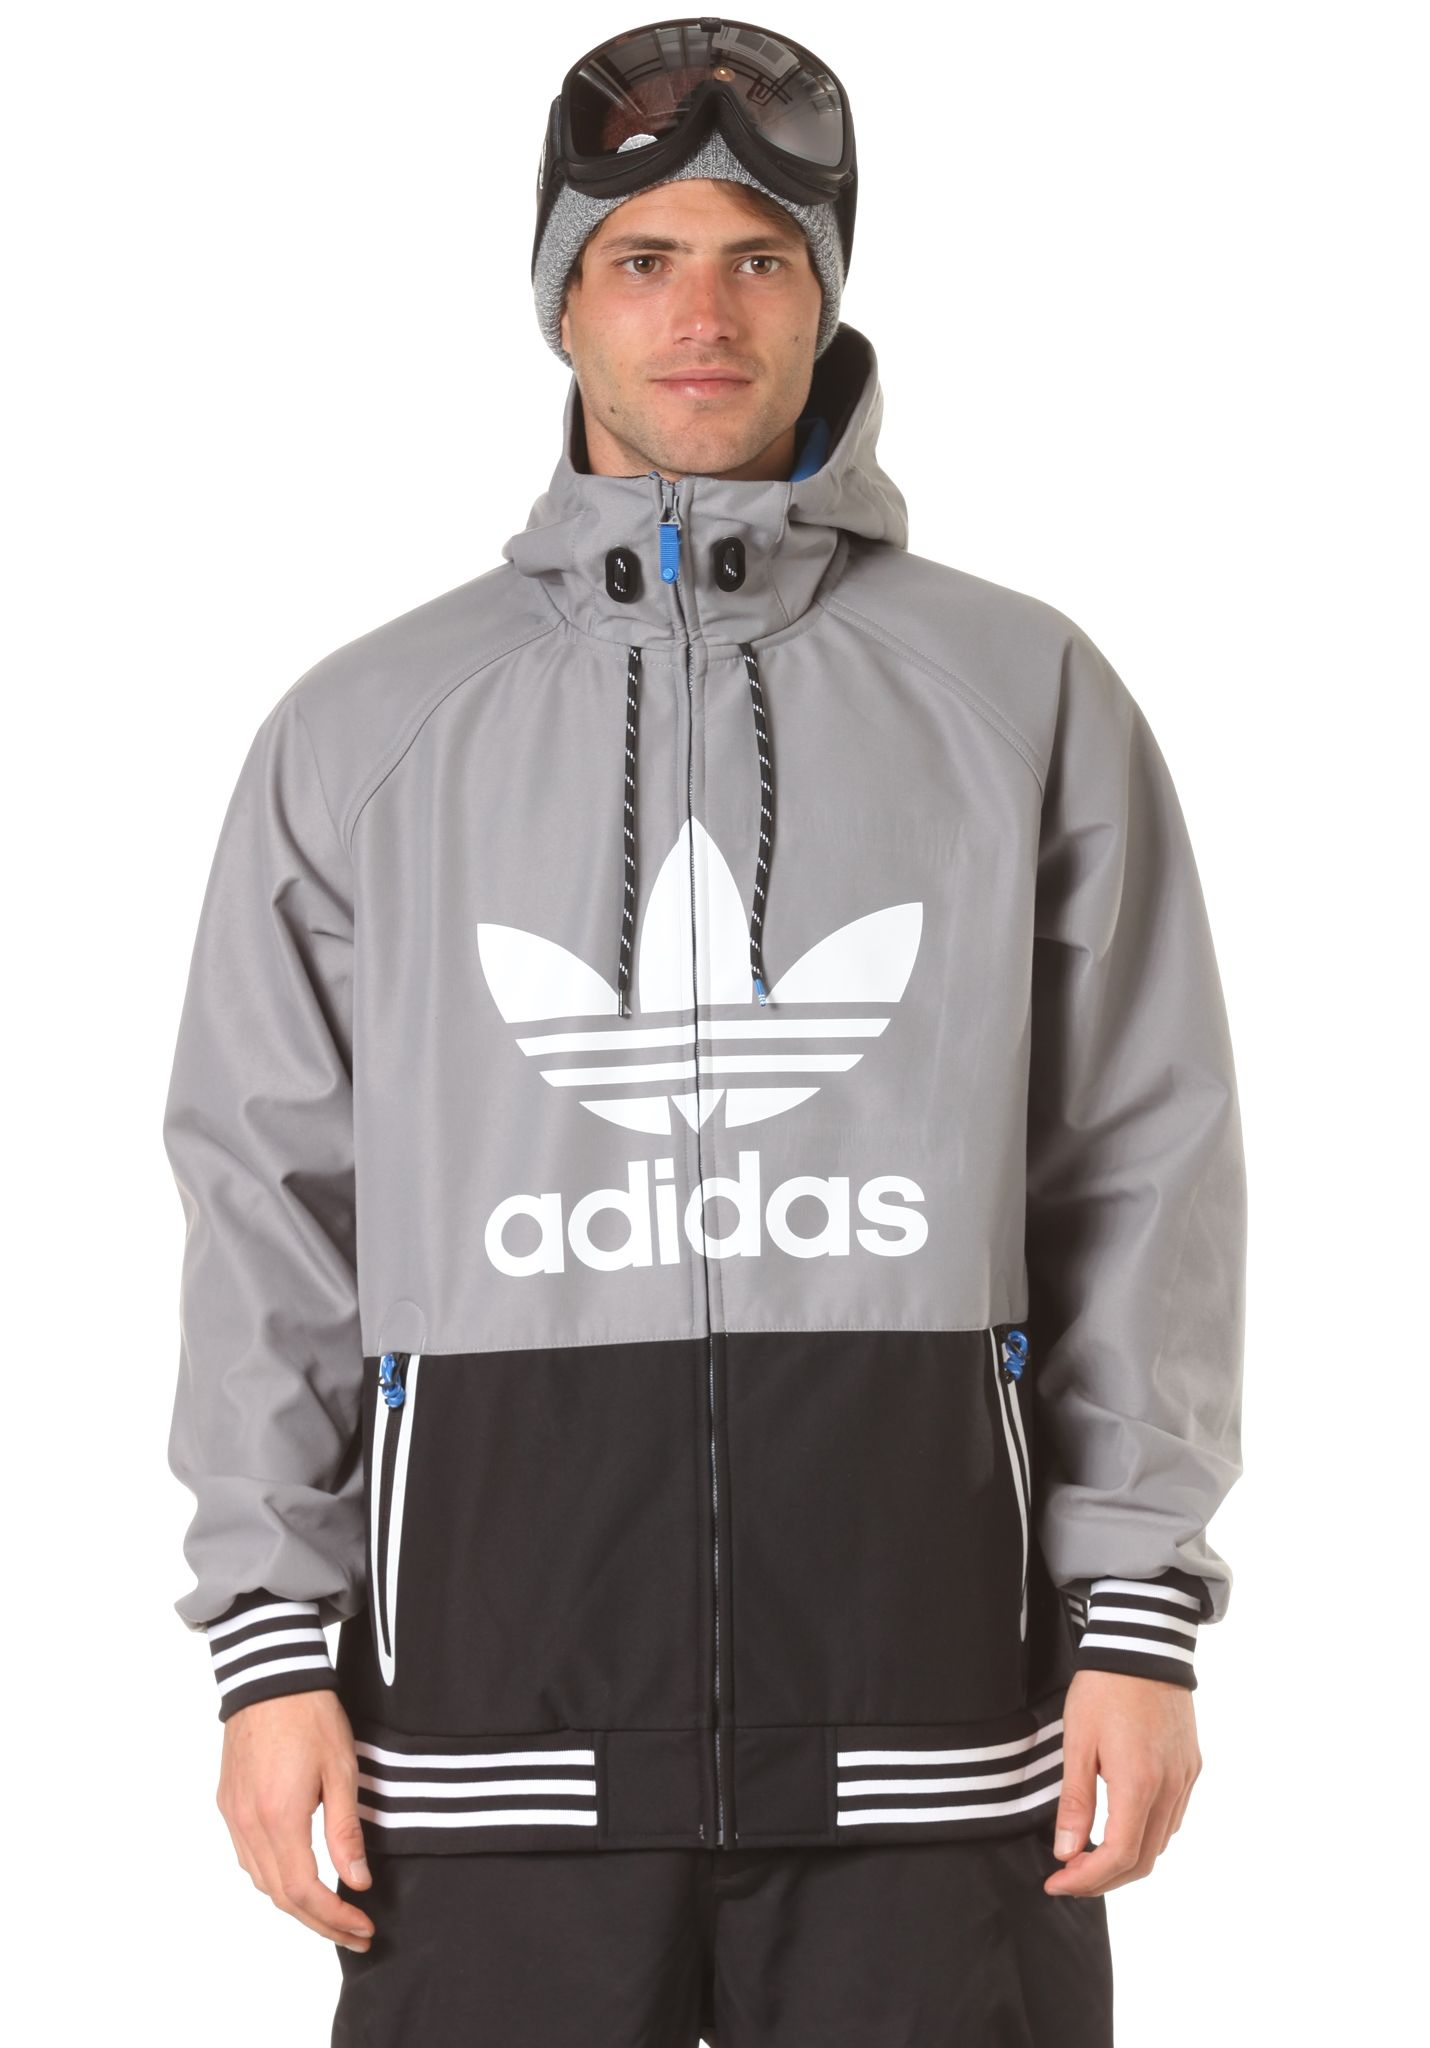 giacca adidas invernale